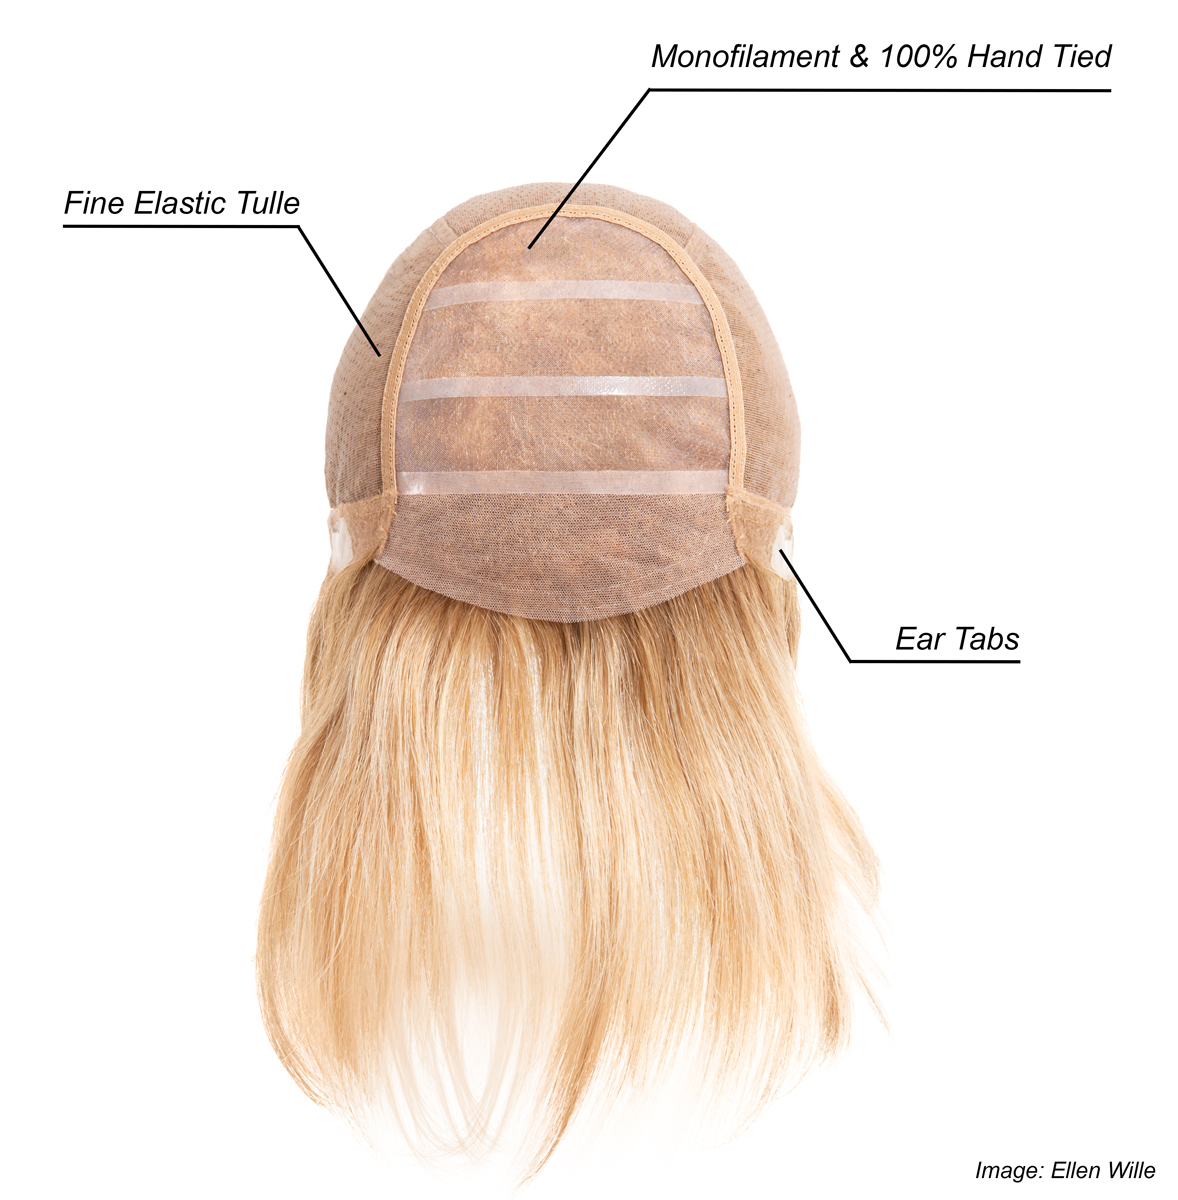 Monofilament and 100% hand tied cap construction, Ellen Wille Wigs